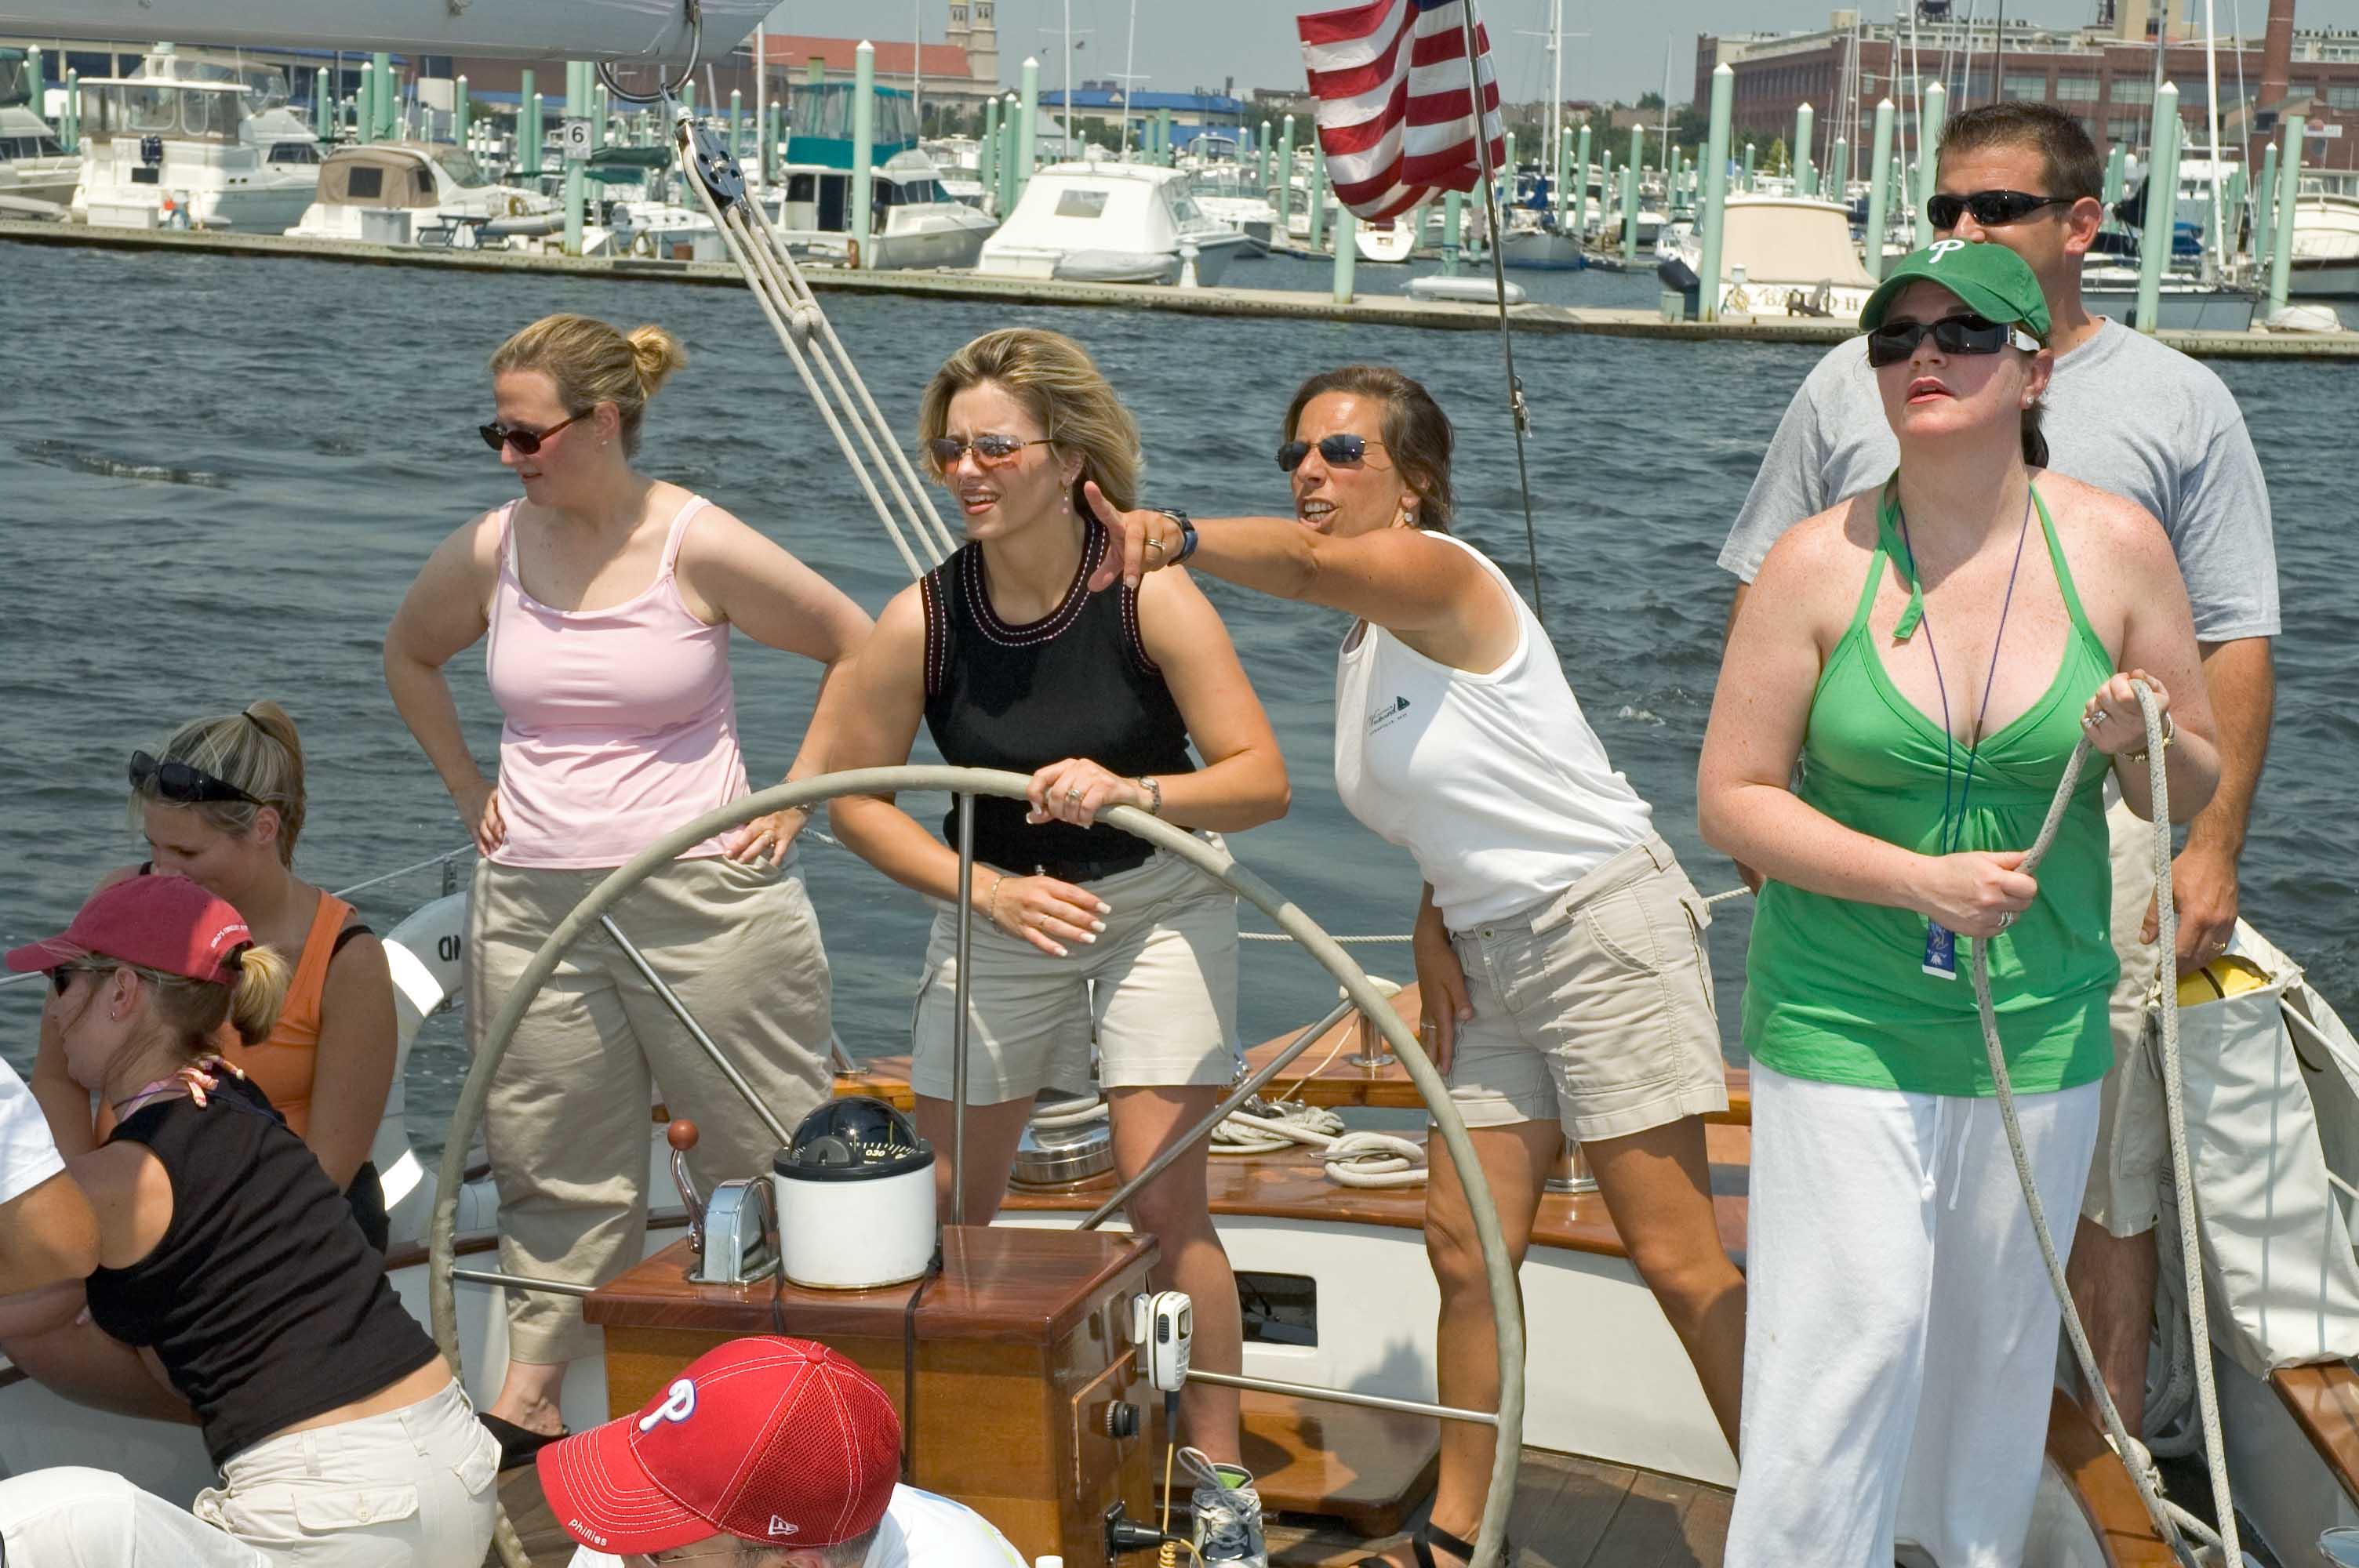 Team Building guests steering with captain pointing out marks